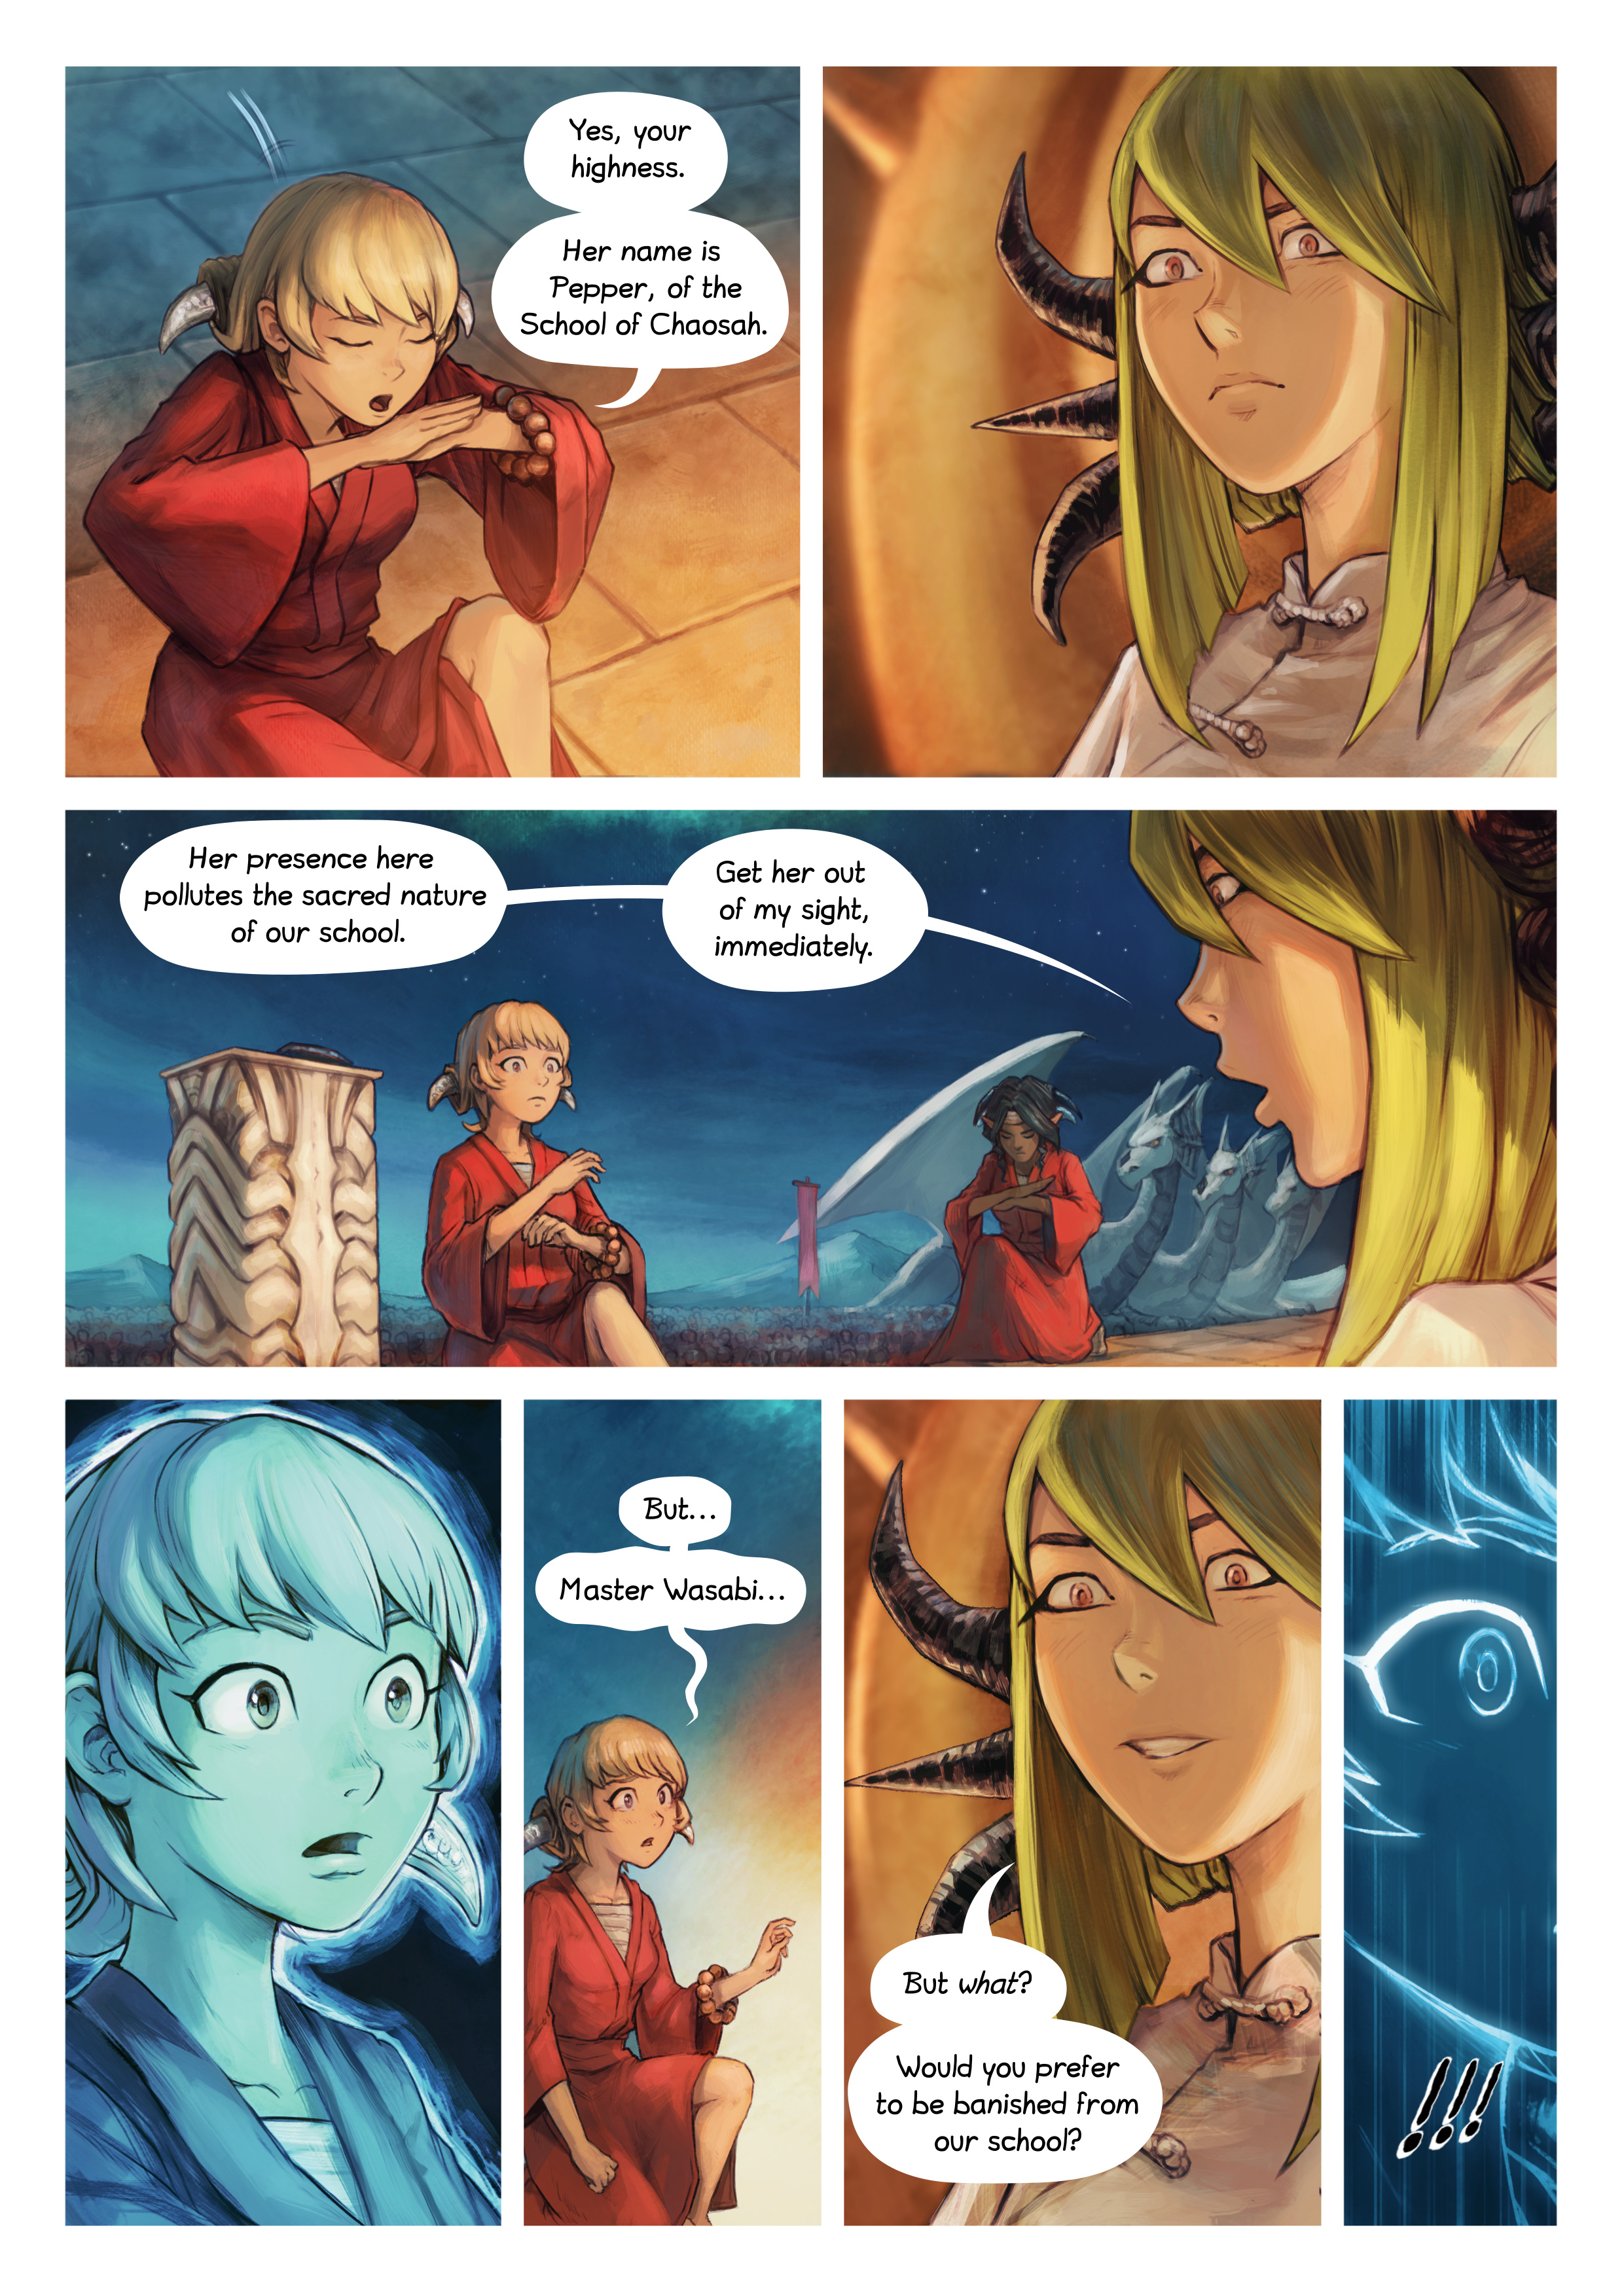 Episode 34: The Knighting of Shichimi, Page 4